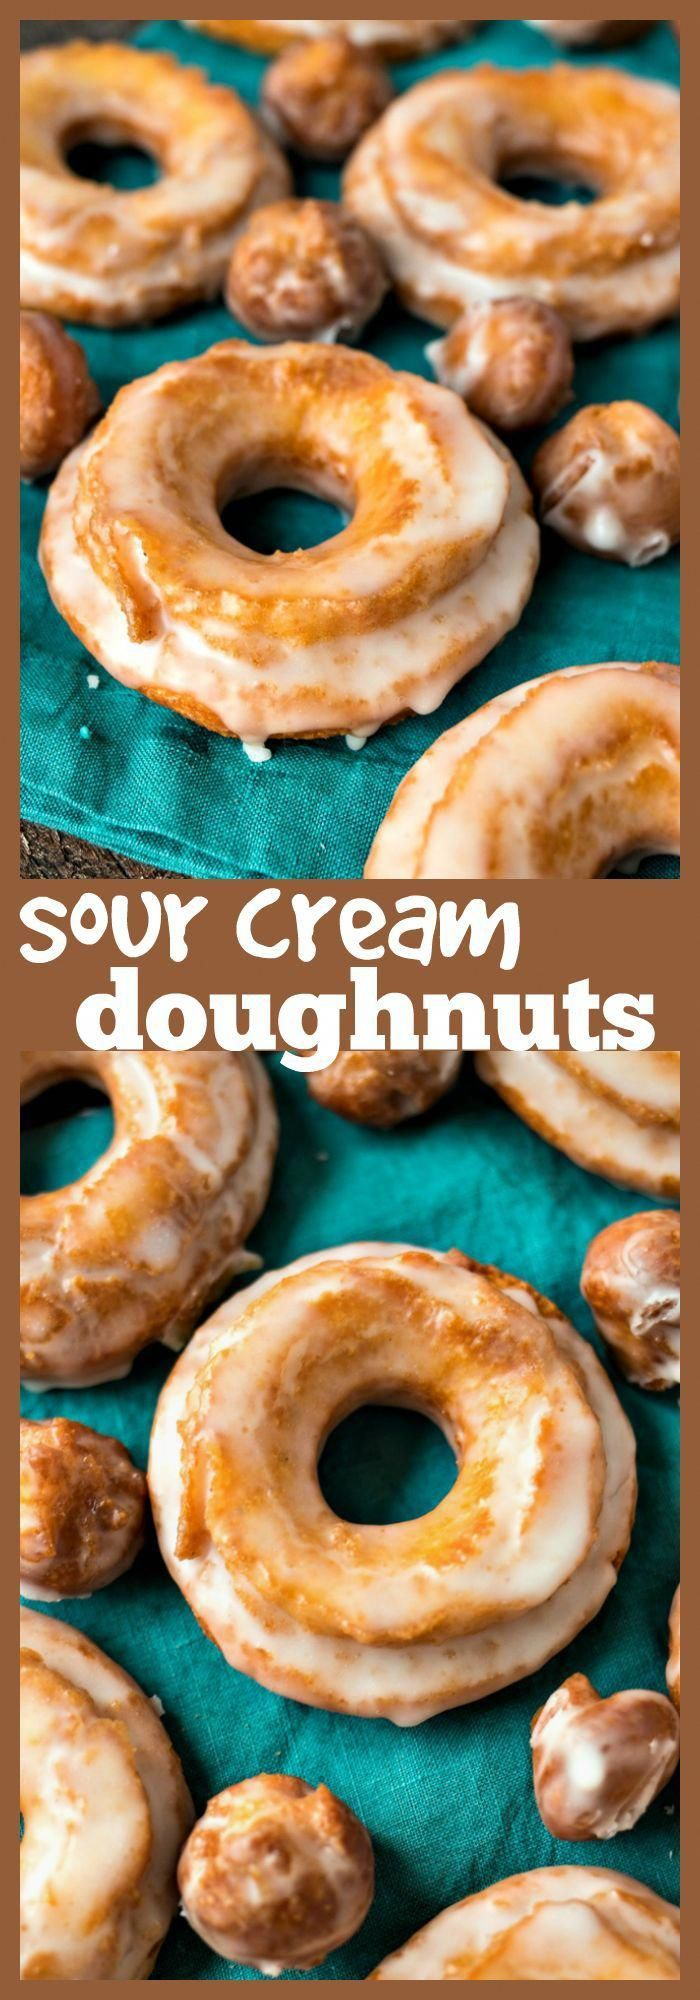 Sour Cream Doughnuts – Dense and crispy on the outside, moist and cakey on the inside, these sour cream doughnuts are your favorite cake doughnuts that are ready in half the time as yeast doughnuts! #recipe #doughnuts #donuts #dessert #breakfast #brunch #CottageCheeseKetoRecipes